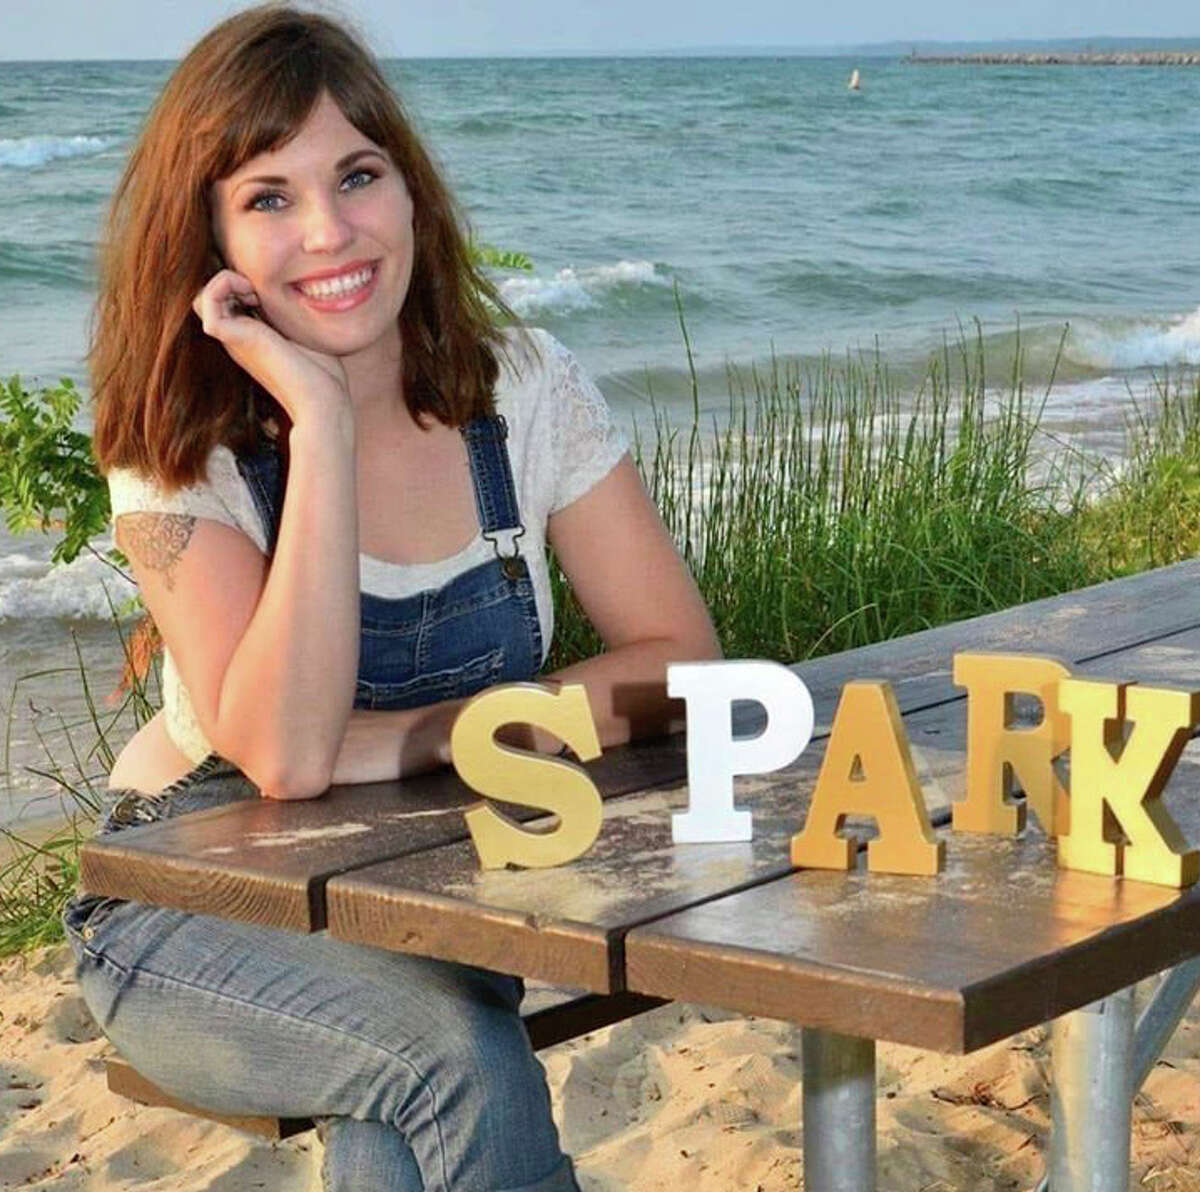 Spark in the Dark founder Abagail McKiernan recently announced that the nonprofit has been selected by Facebook as one of four organizations in the North America Cohort to receive additional funding to continue its mission of creating resilient and connected communities.